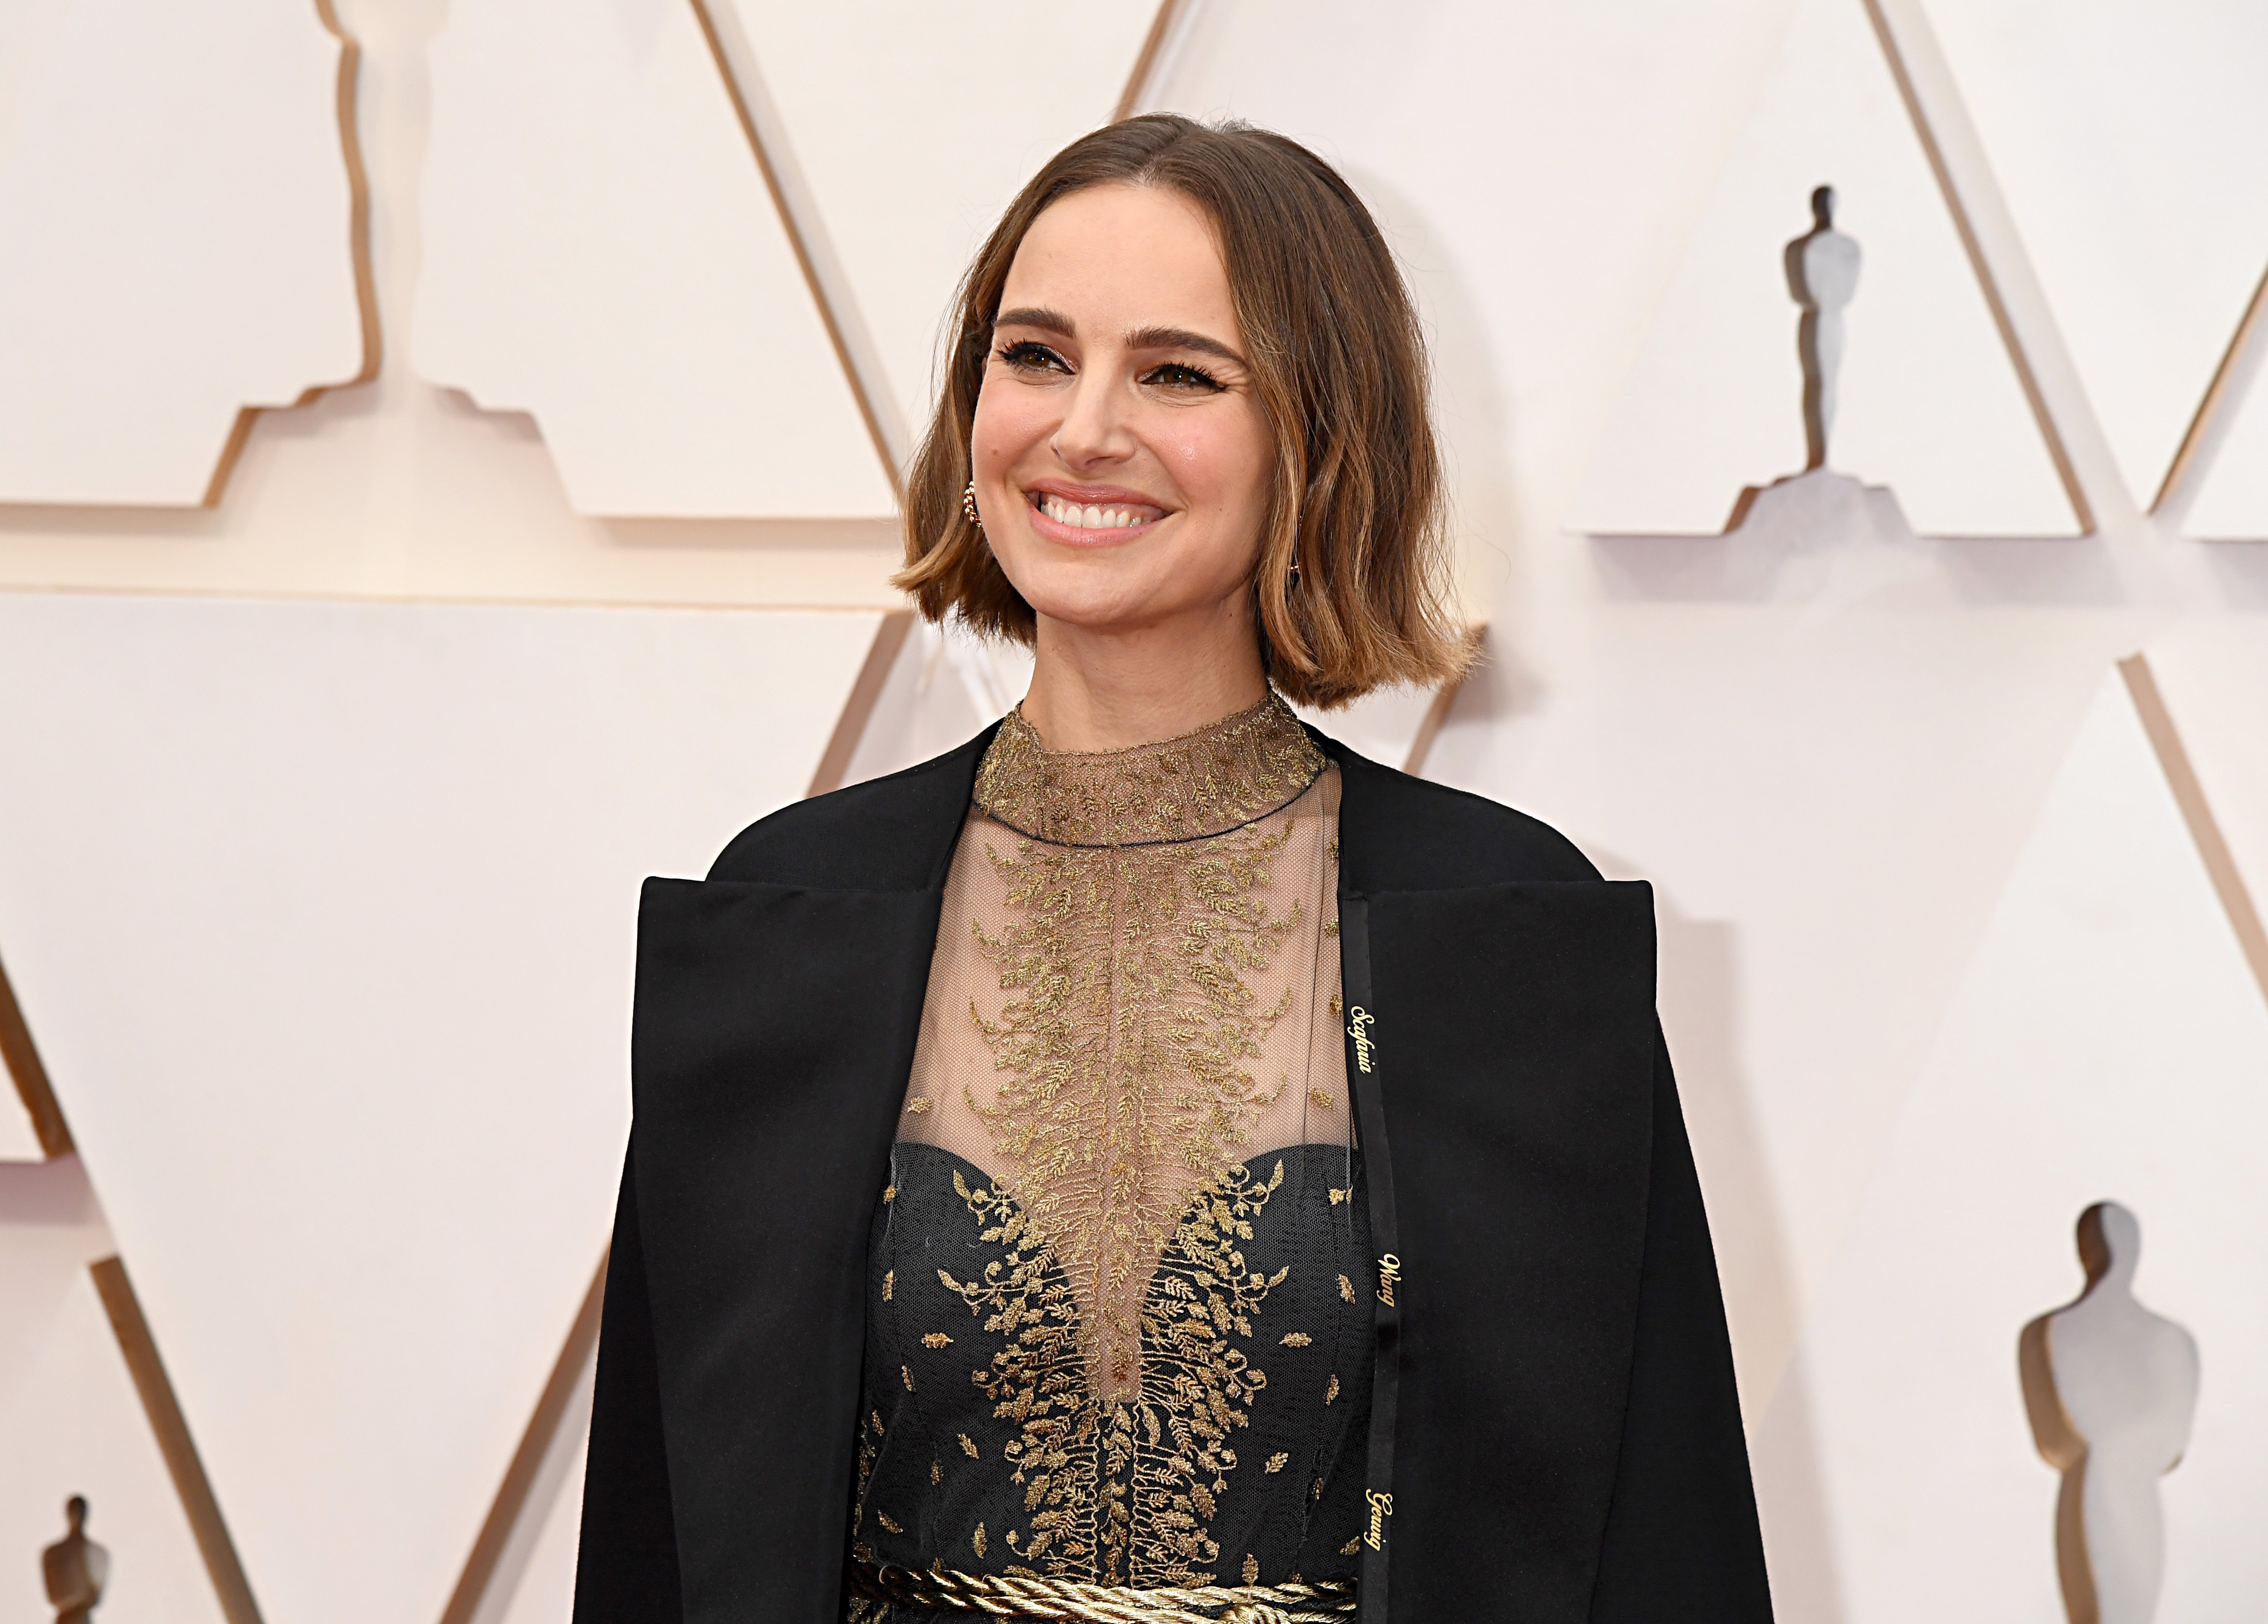 Actress Natalie Portman attending the 92nd Annual Academy Awards  Source | Photo Getty Images